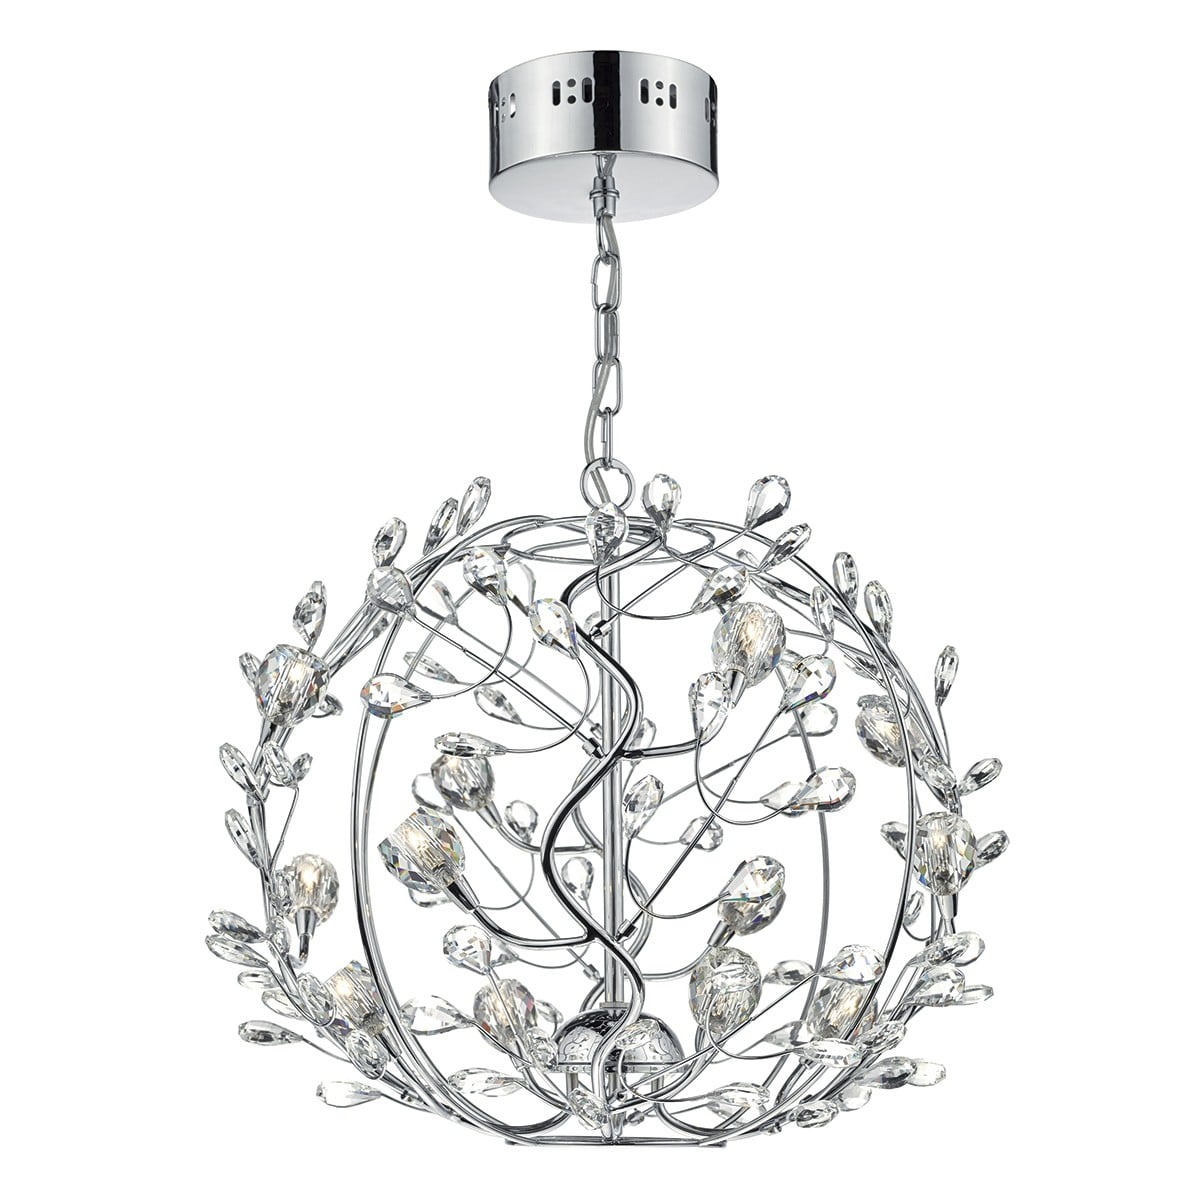 Dar FLI1250 Flirt 12 Light Ball Pendant in Polished Chrome & Crystal